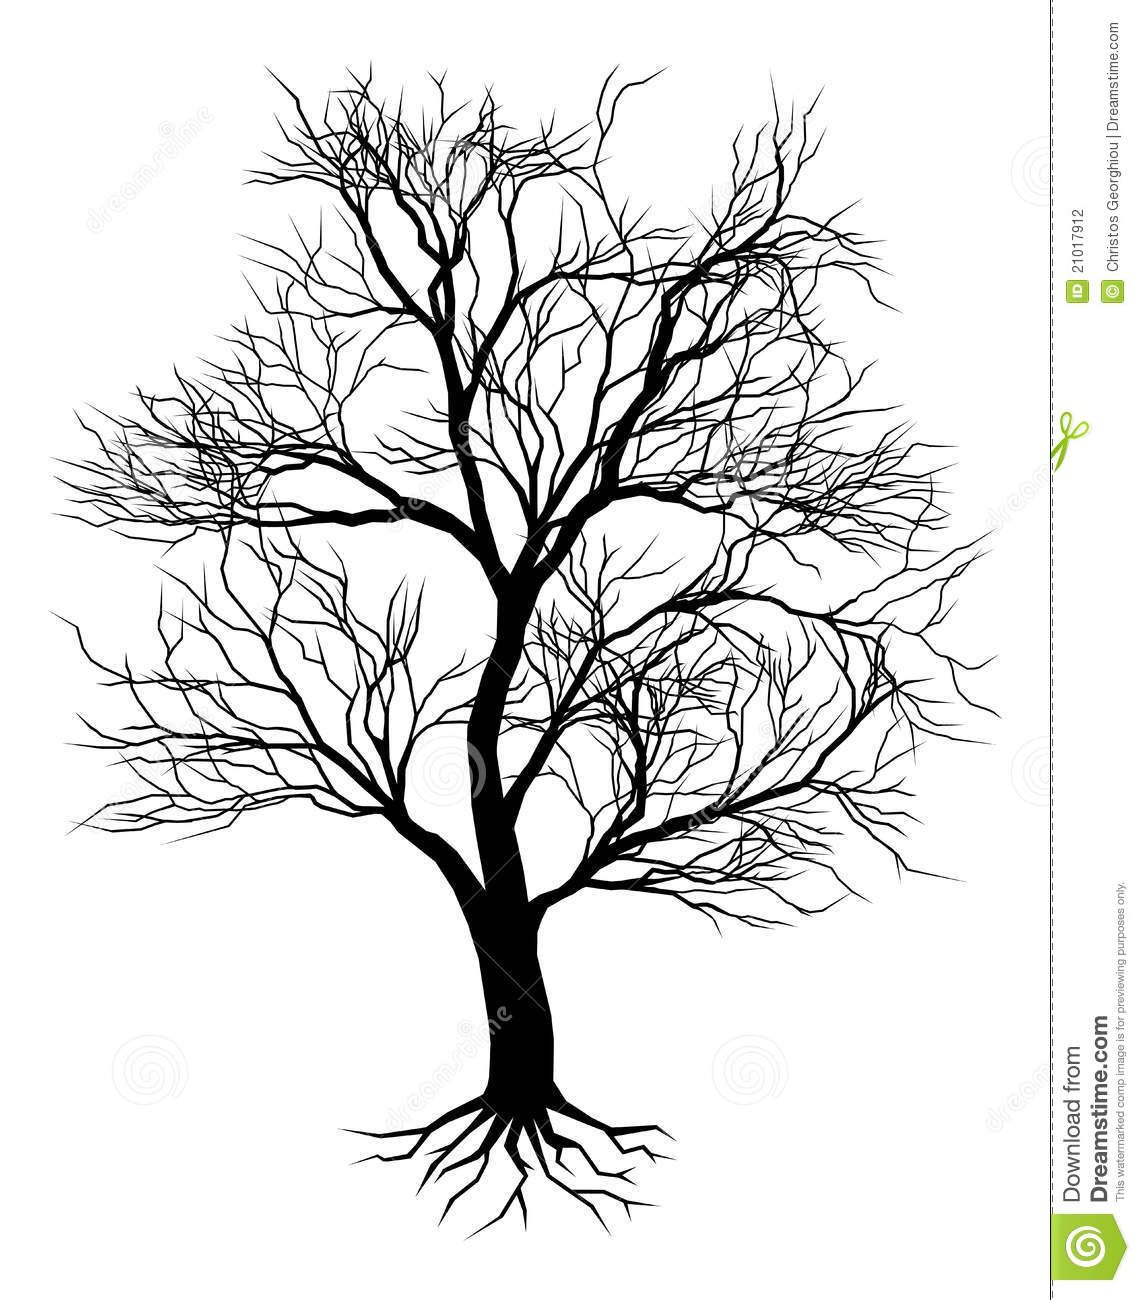 Images For > Dead Oak Tree Drawing.